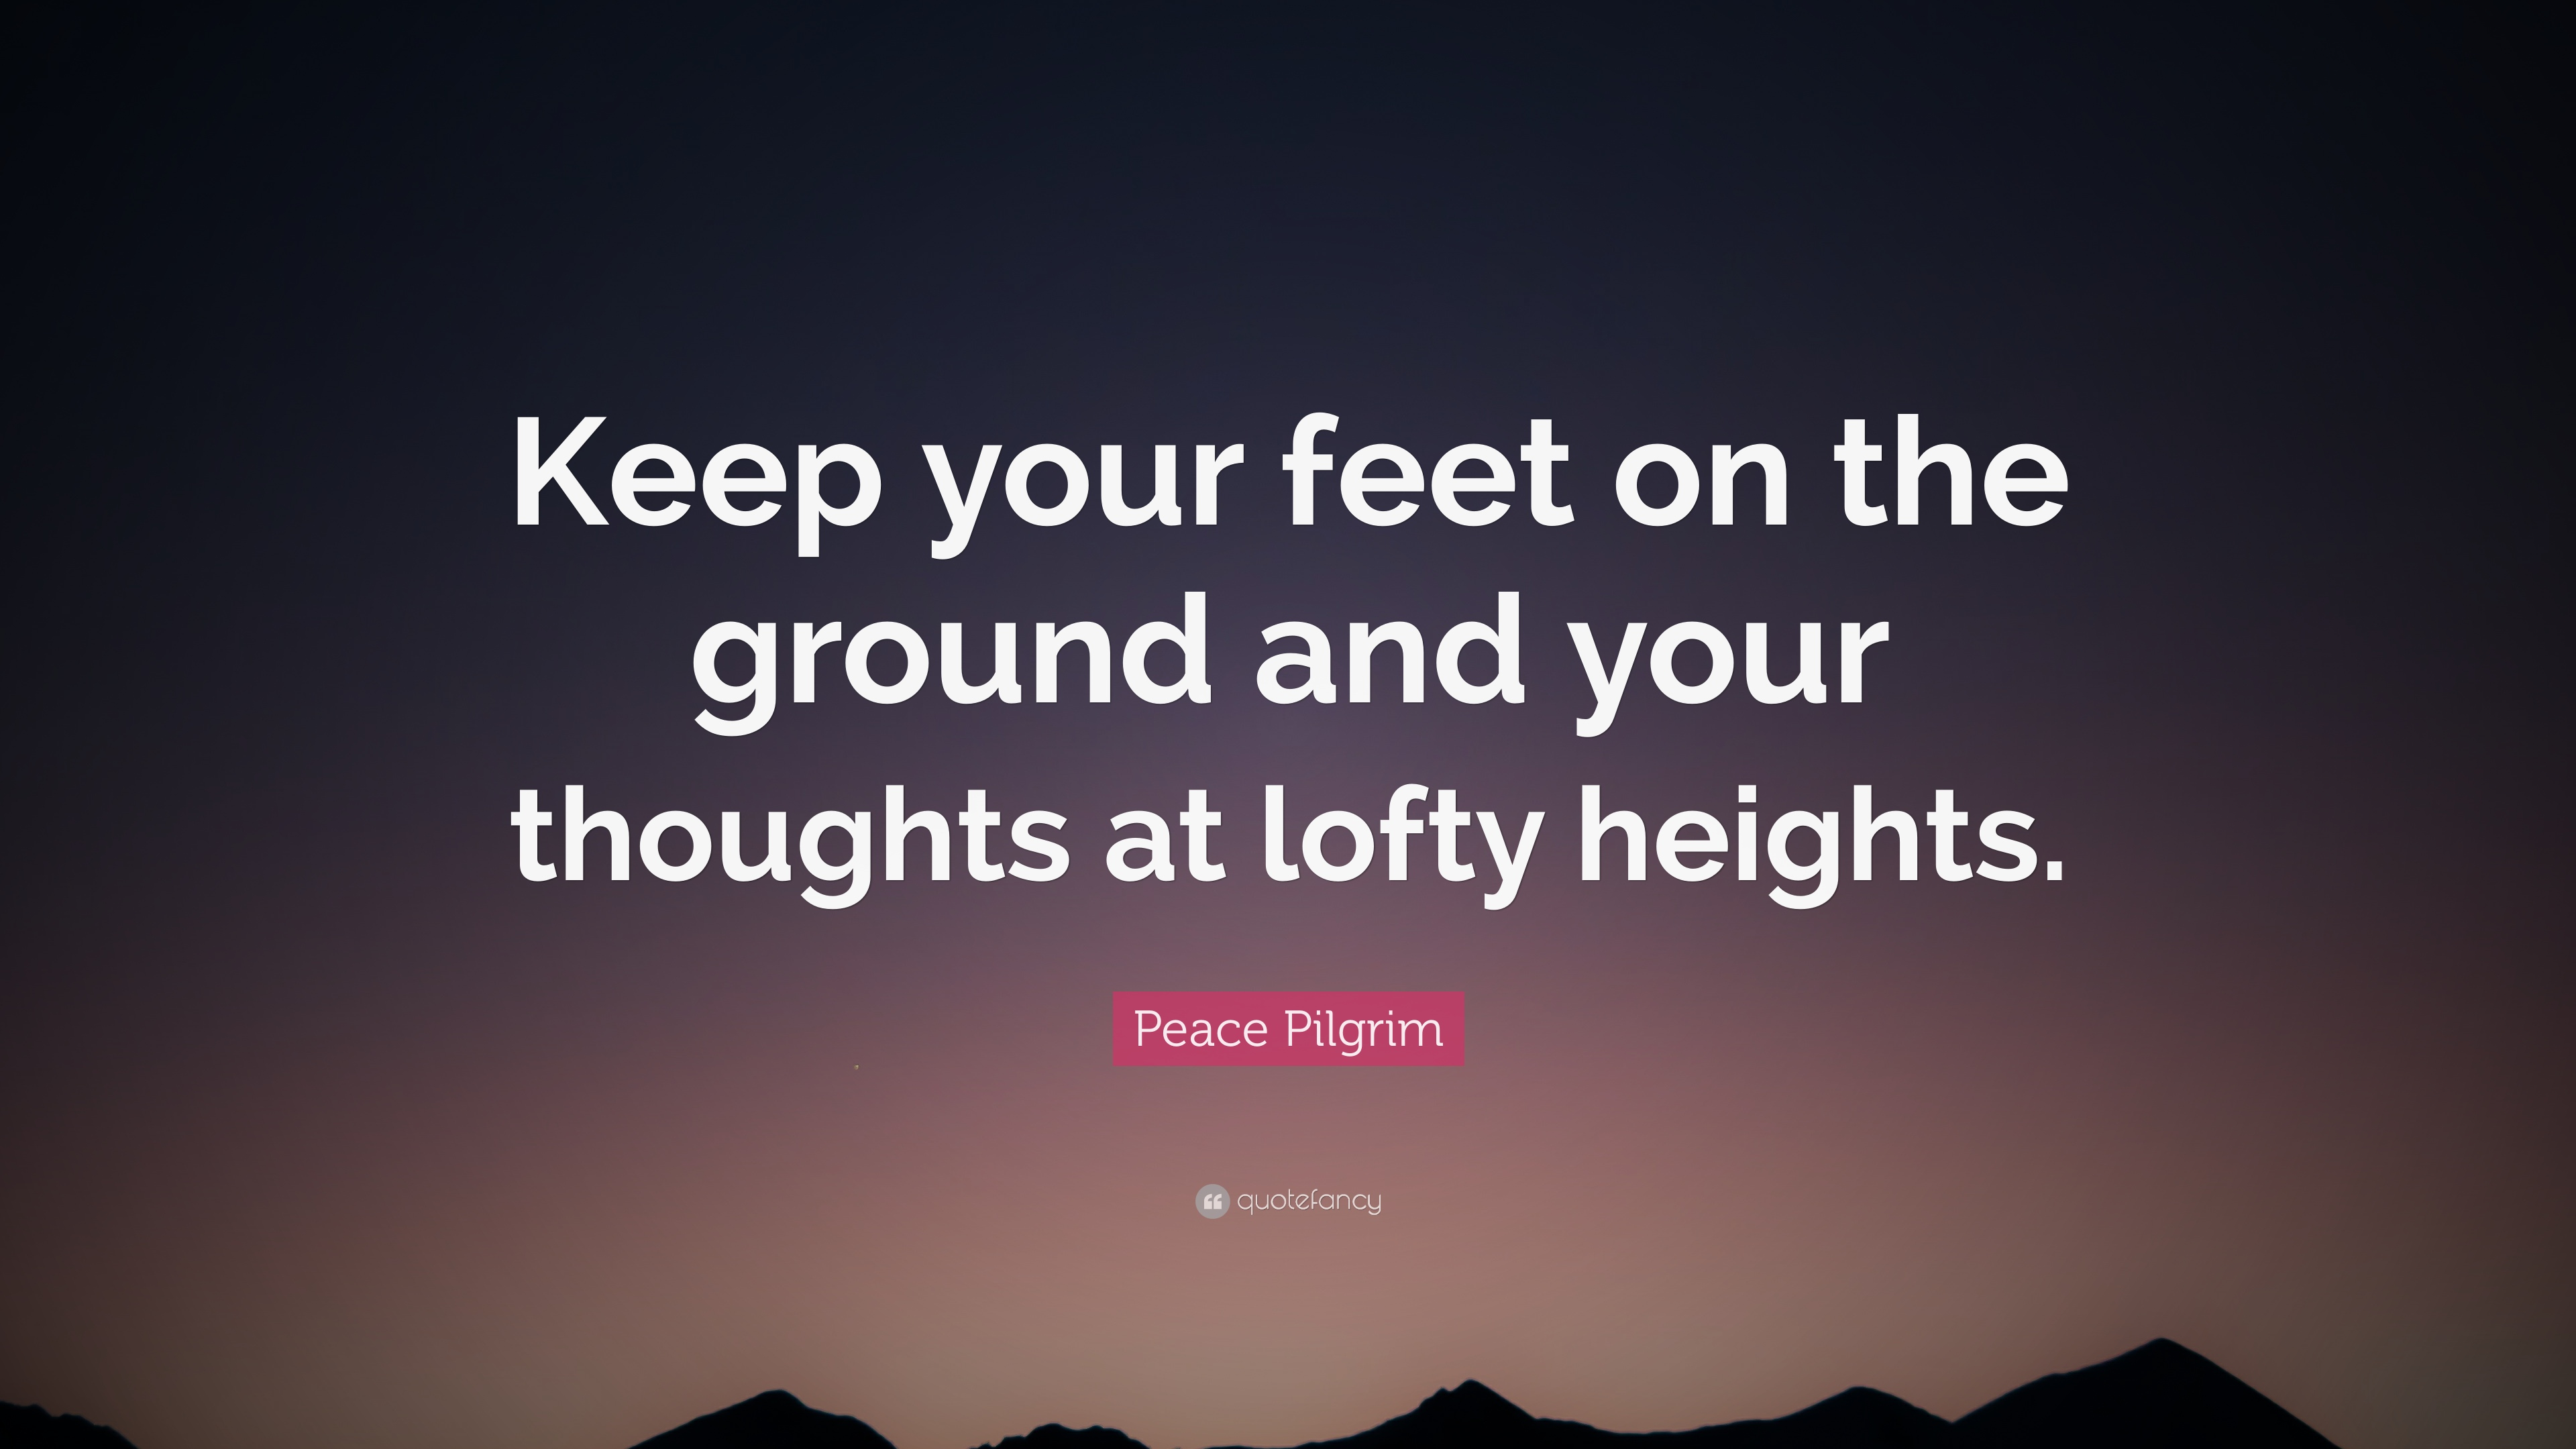 """Peace Pilgrim Quote: """"Keep your feet on the ground and your thoughts at lofty heights."""" (10 wallpapers) - Quotefancy"""